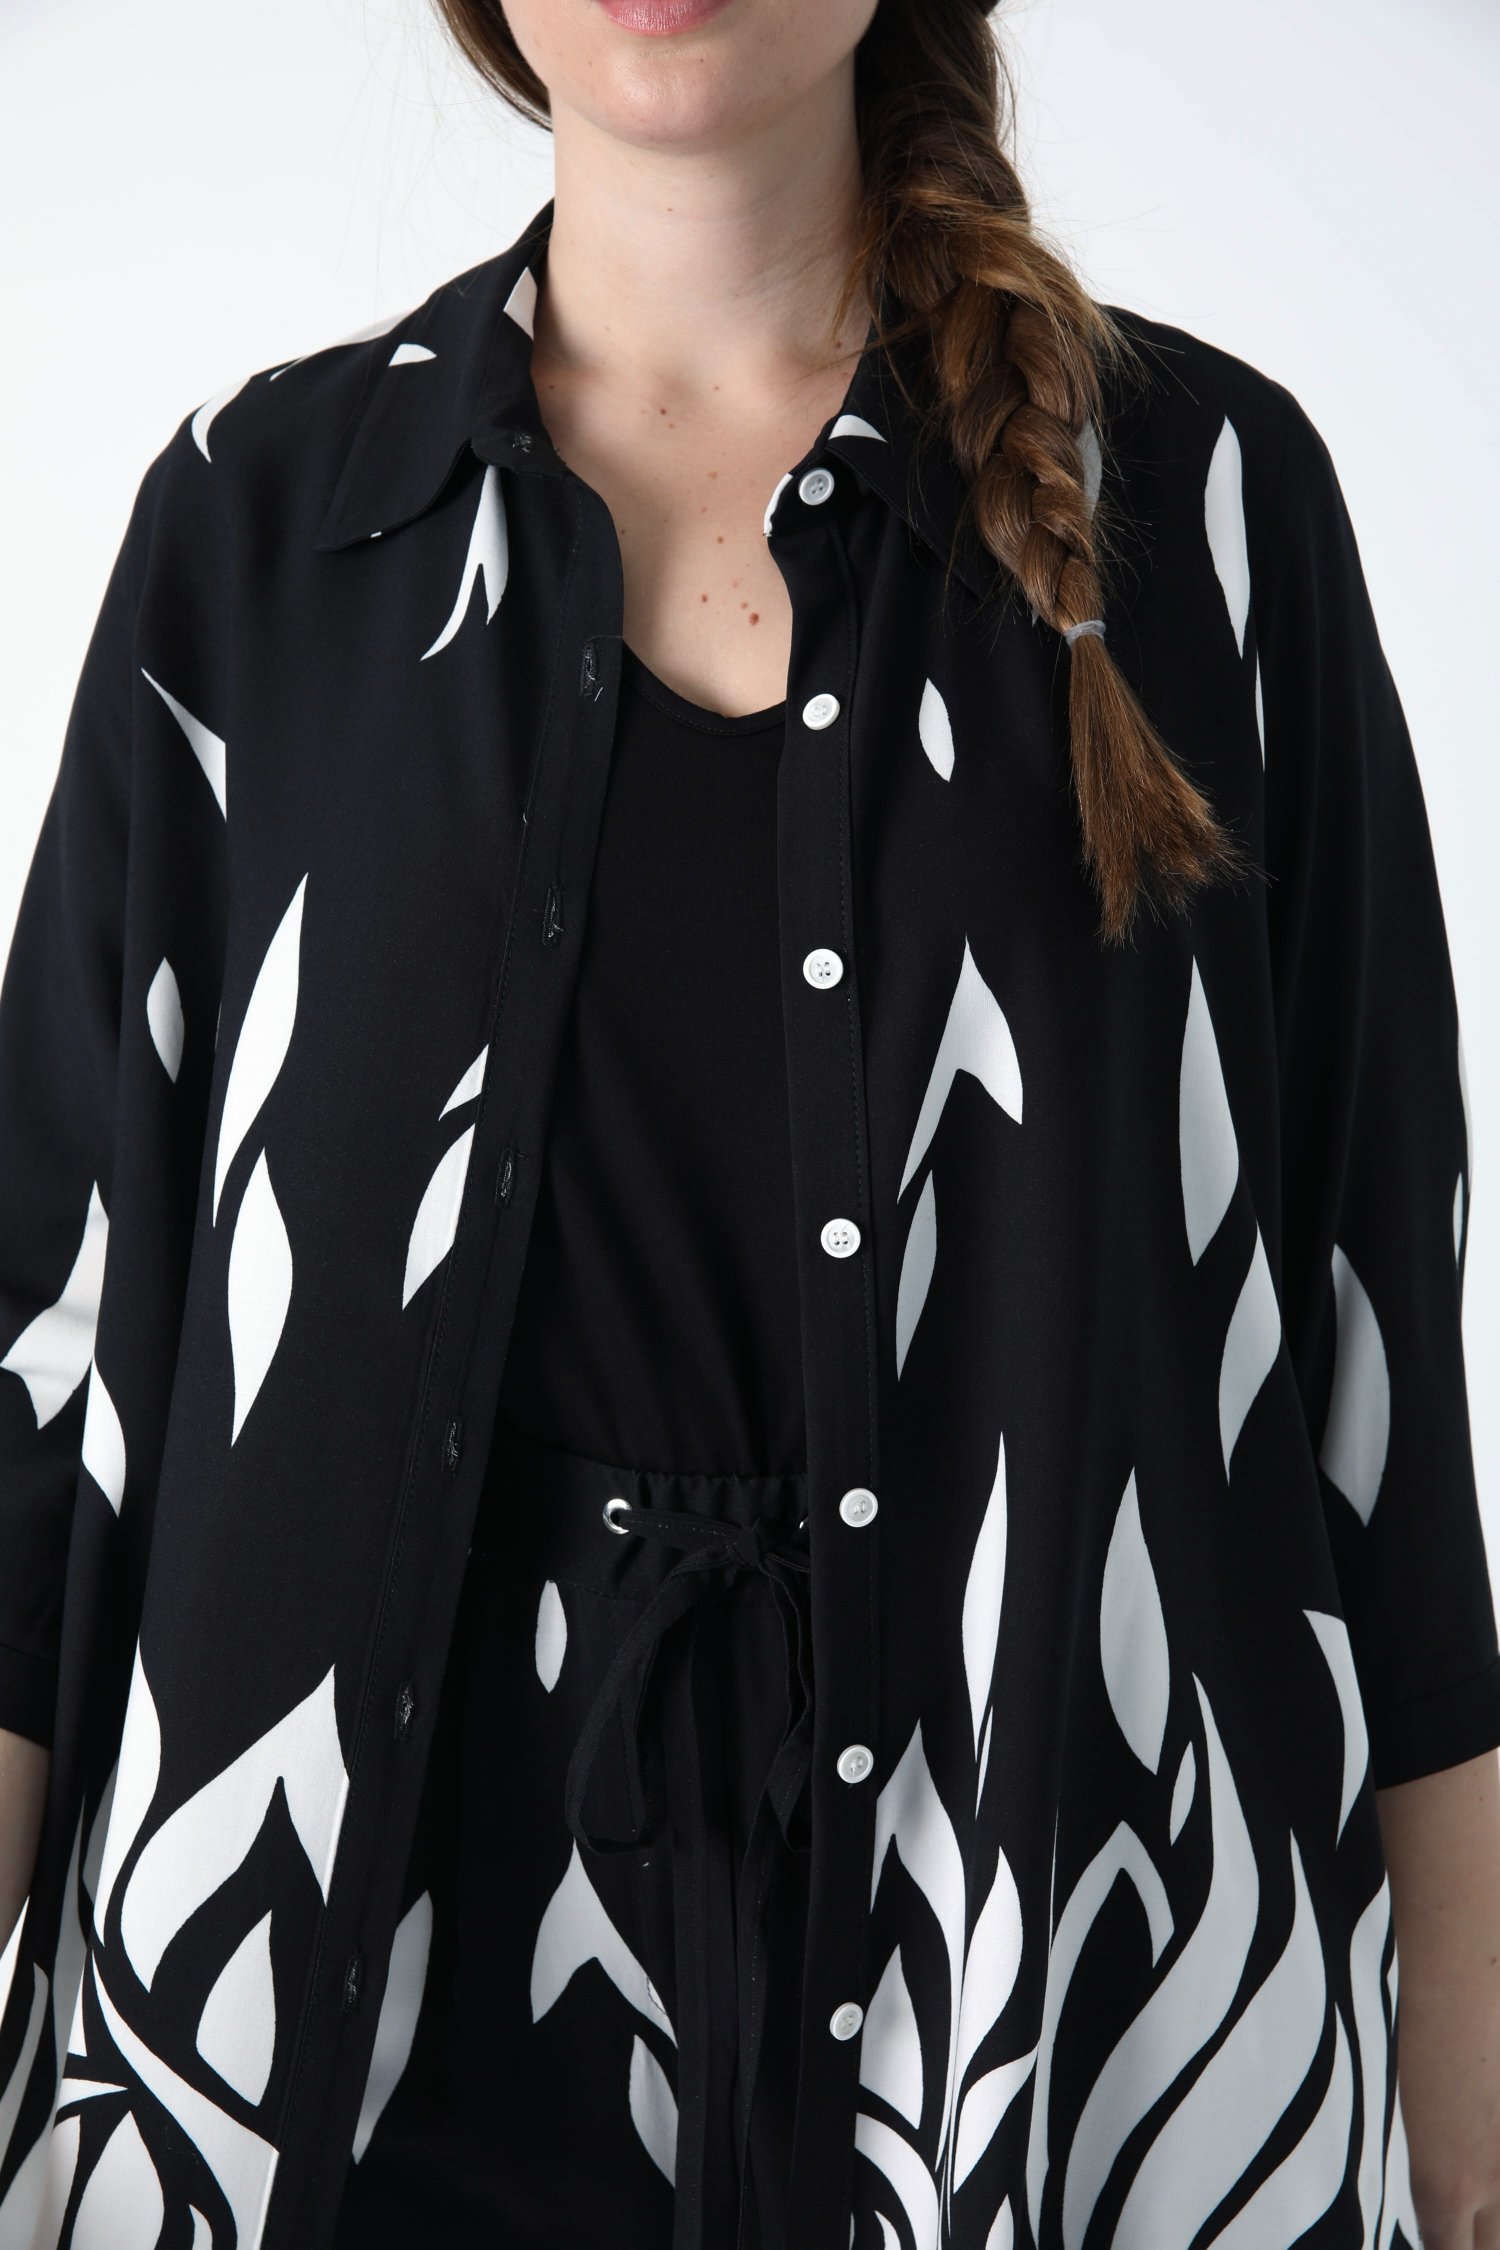 Shirt in fibranne design with printed base